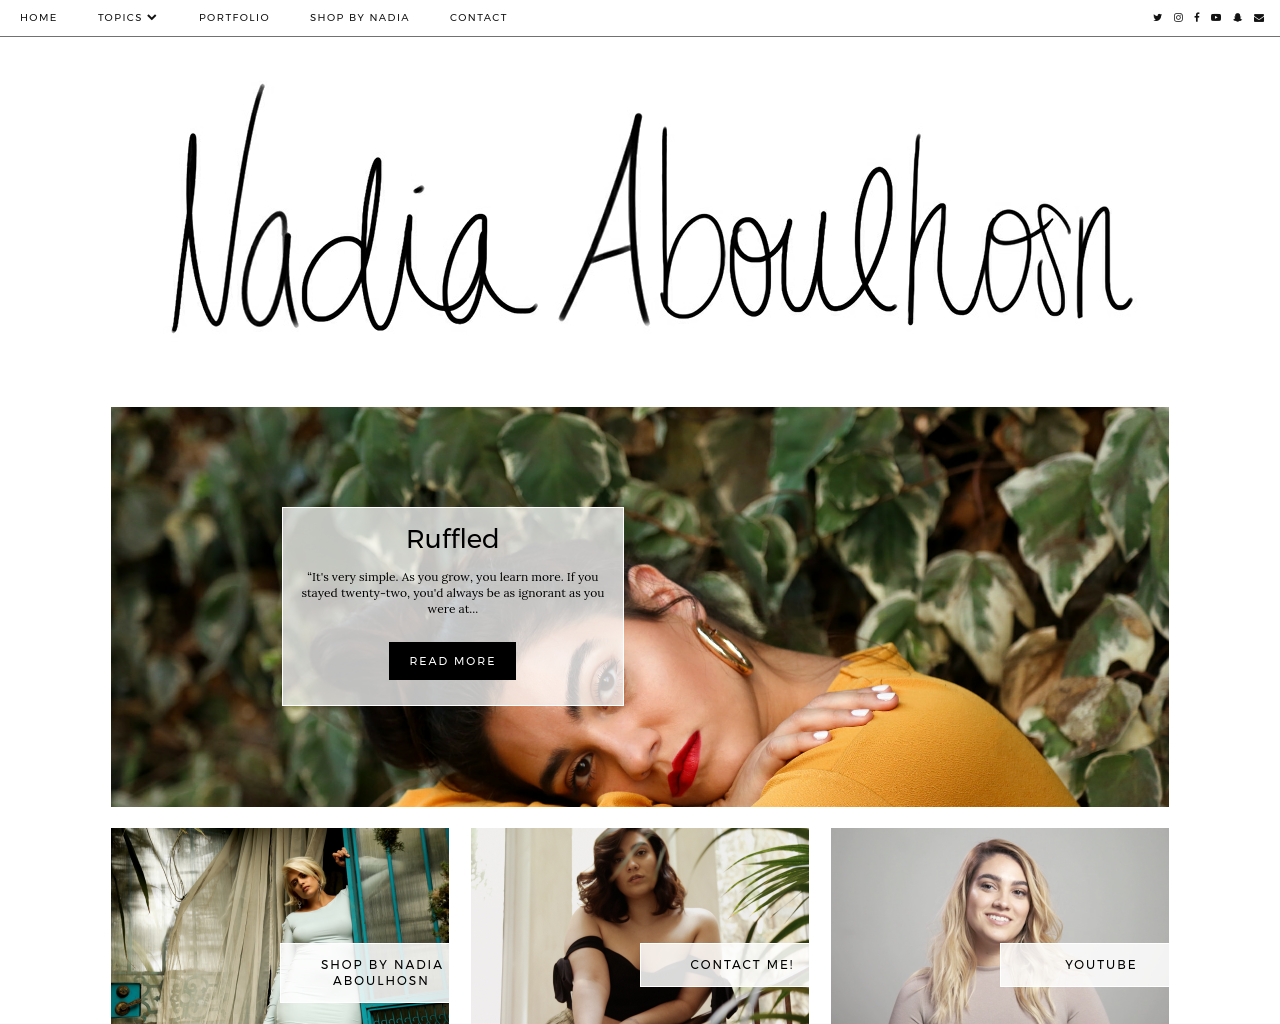 Nadia-Aboulhosn-Advertising-Reviews-Pricing